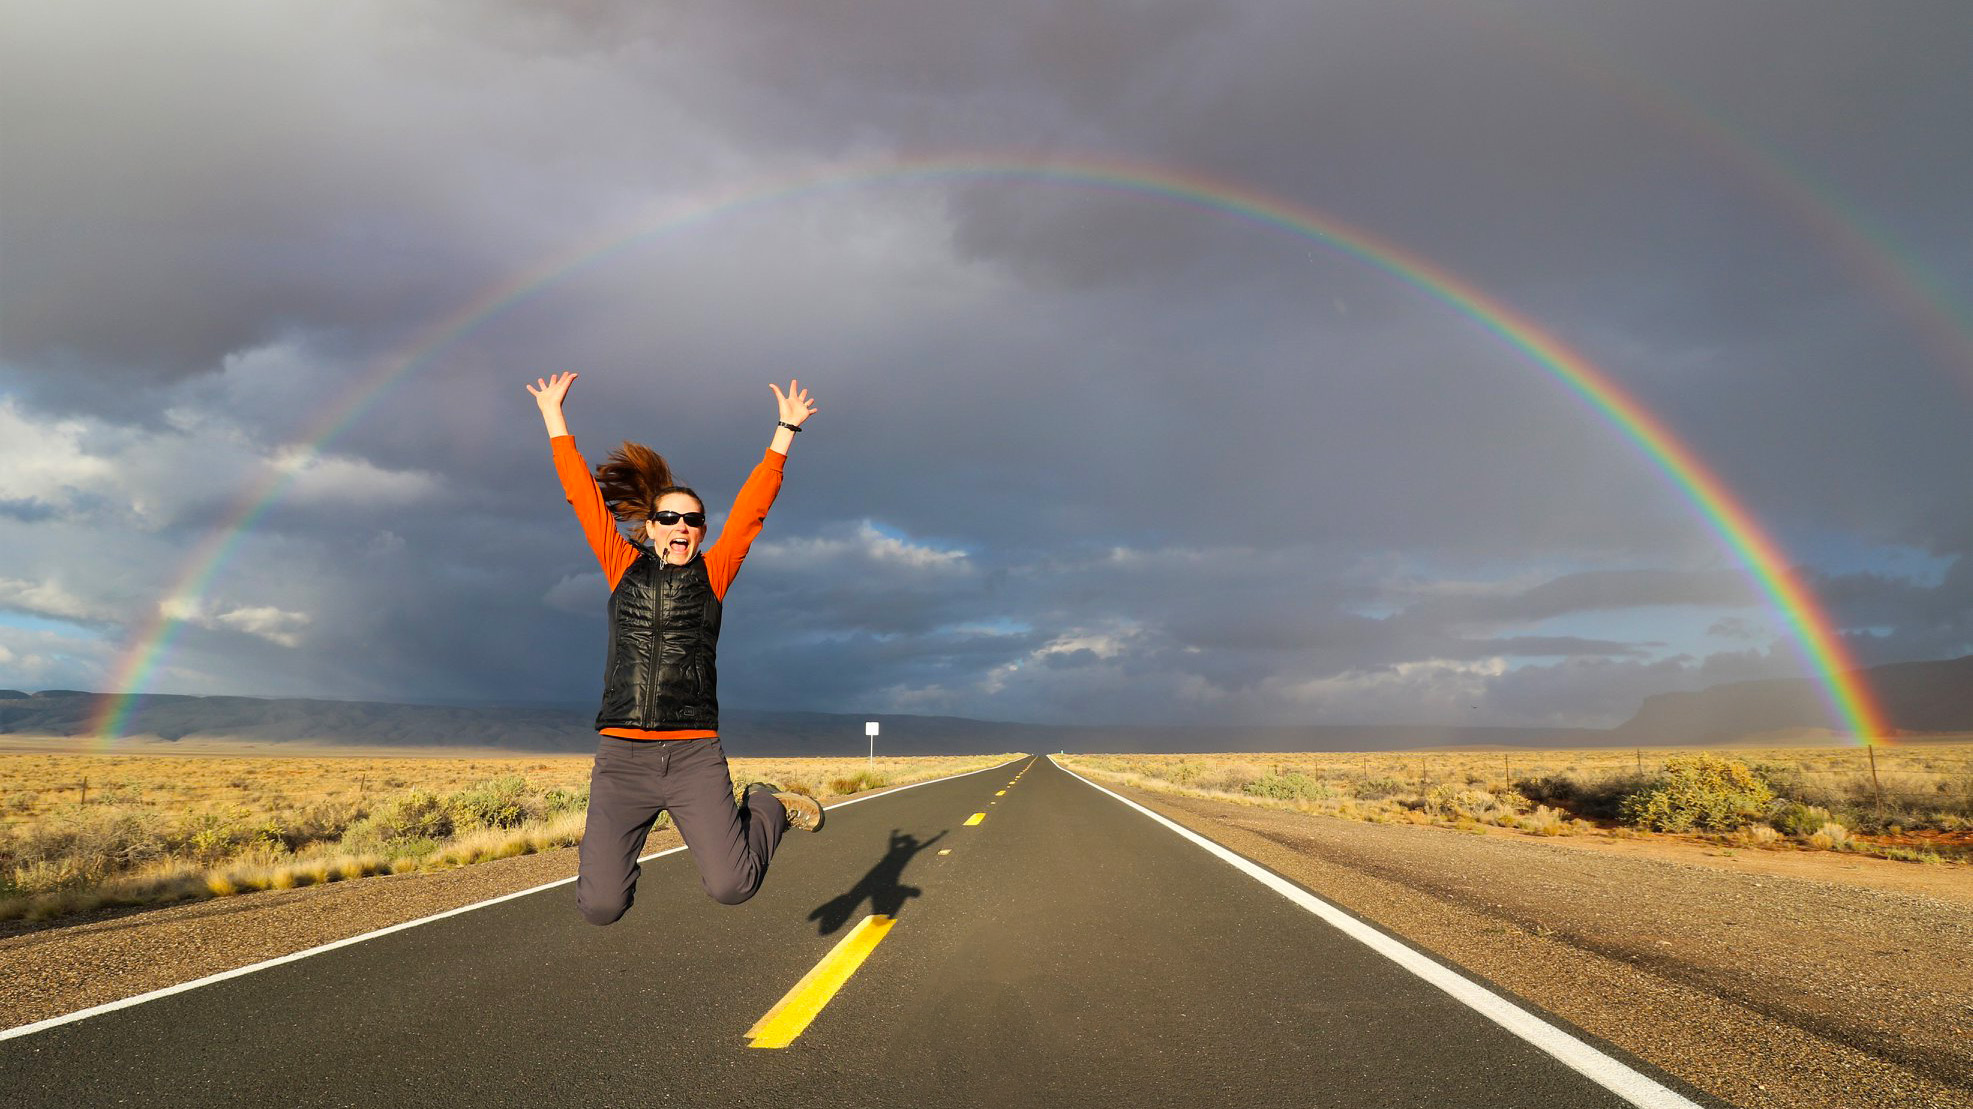 A woman is jumping for joy above a two-lane highway through a desert landscape. A full rainbow crosses the sky in a semicircular arc.